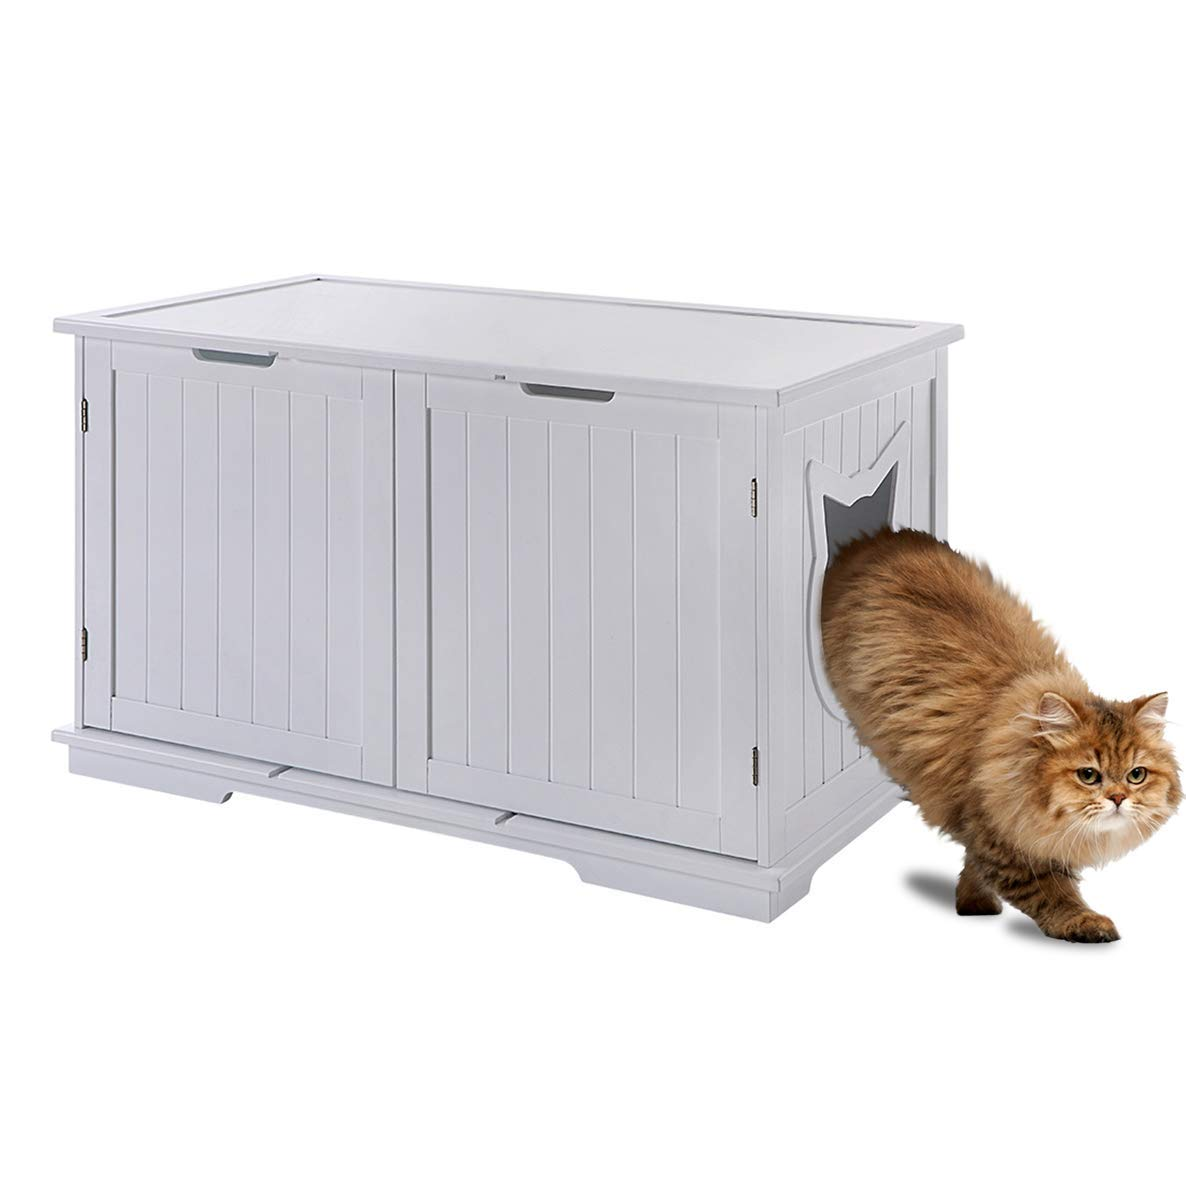 Sweet Barks Designer Cat Washroom Storage Bench Cat Litter Box Enclosure Furniture Box House with Table (White) by Sweet Barks